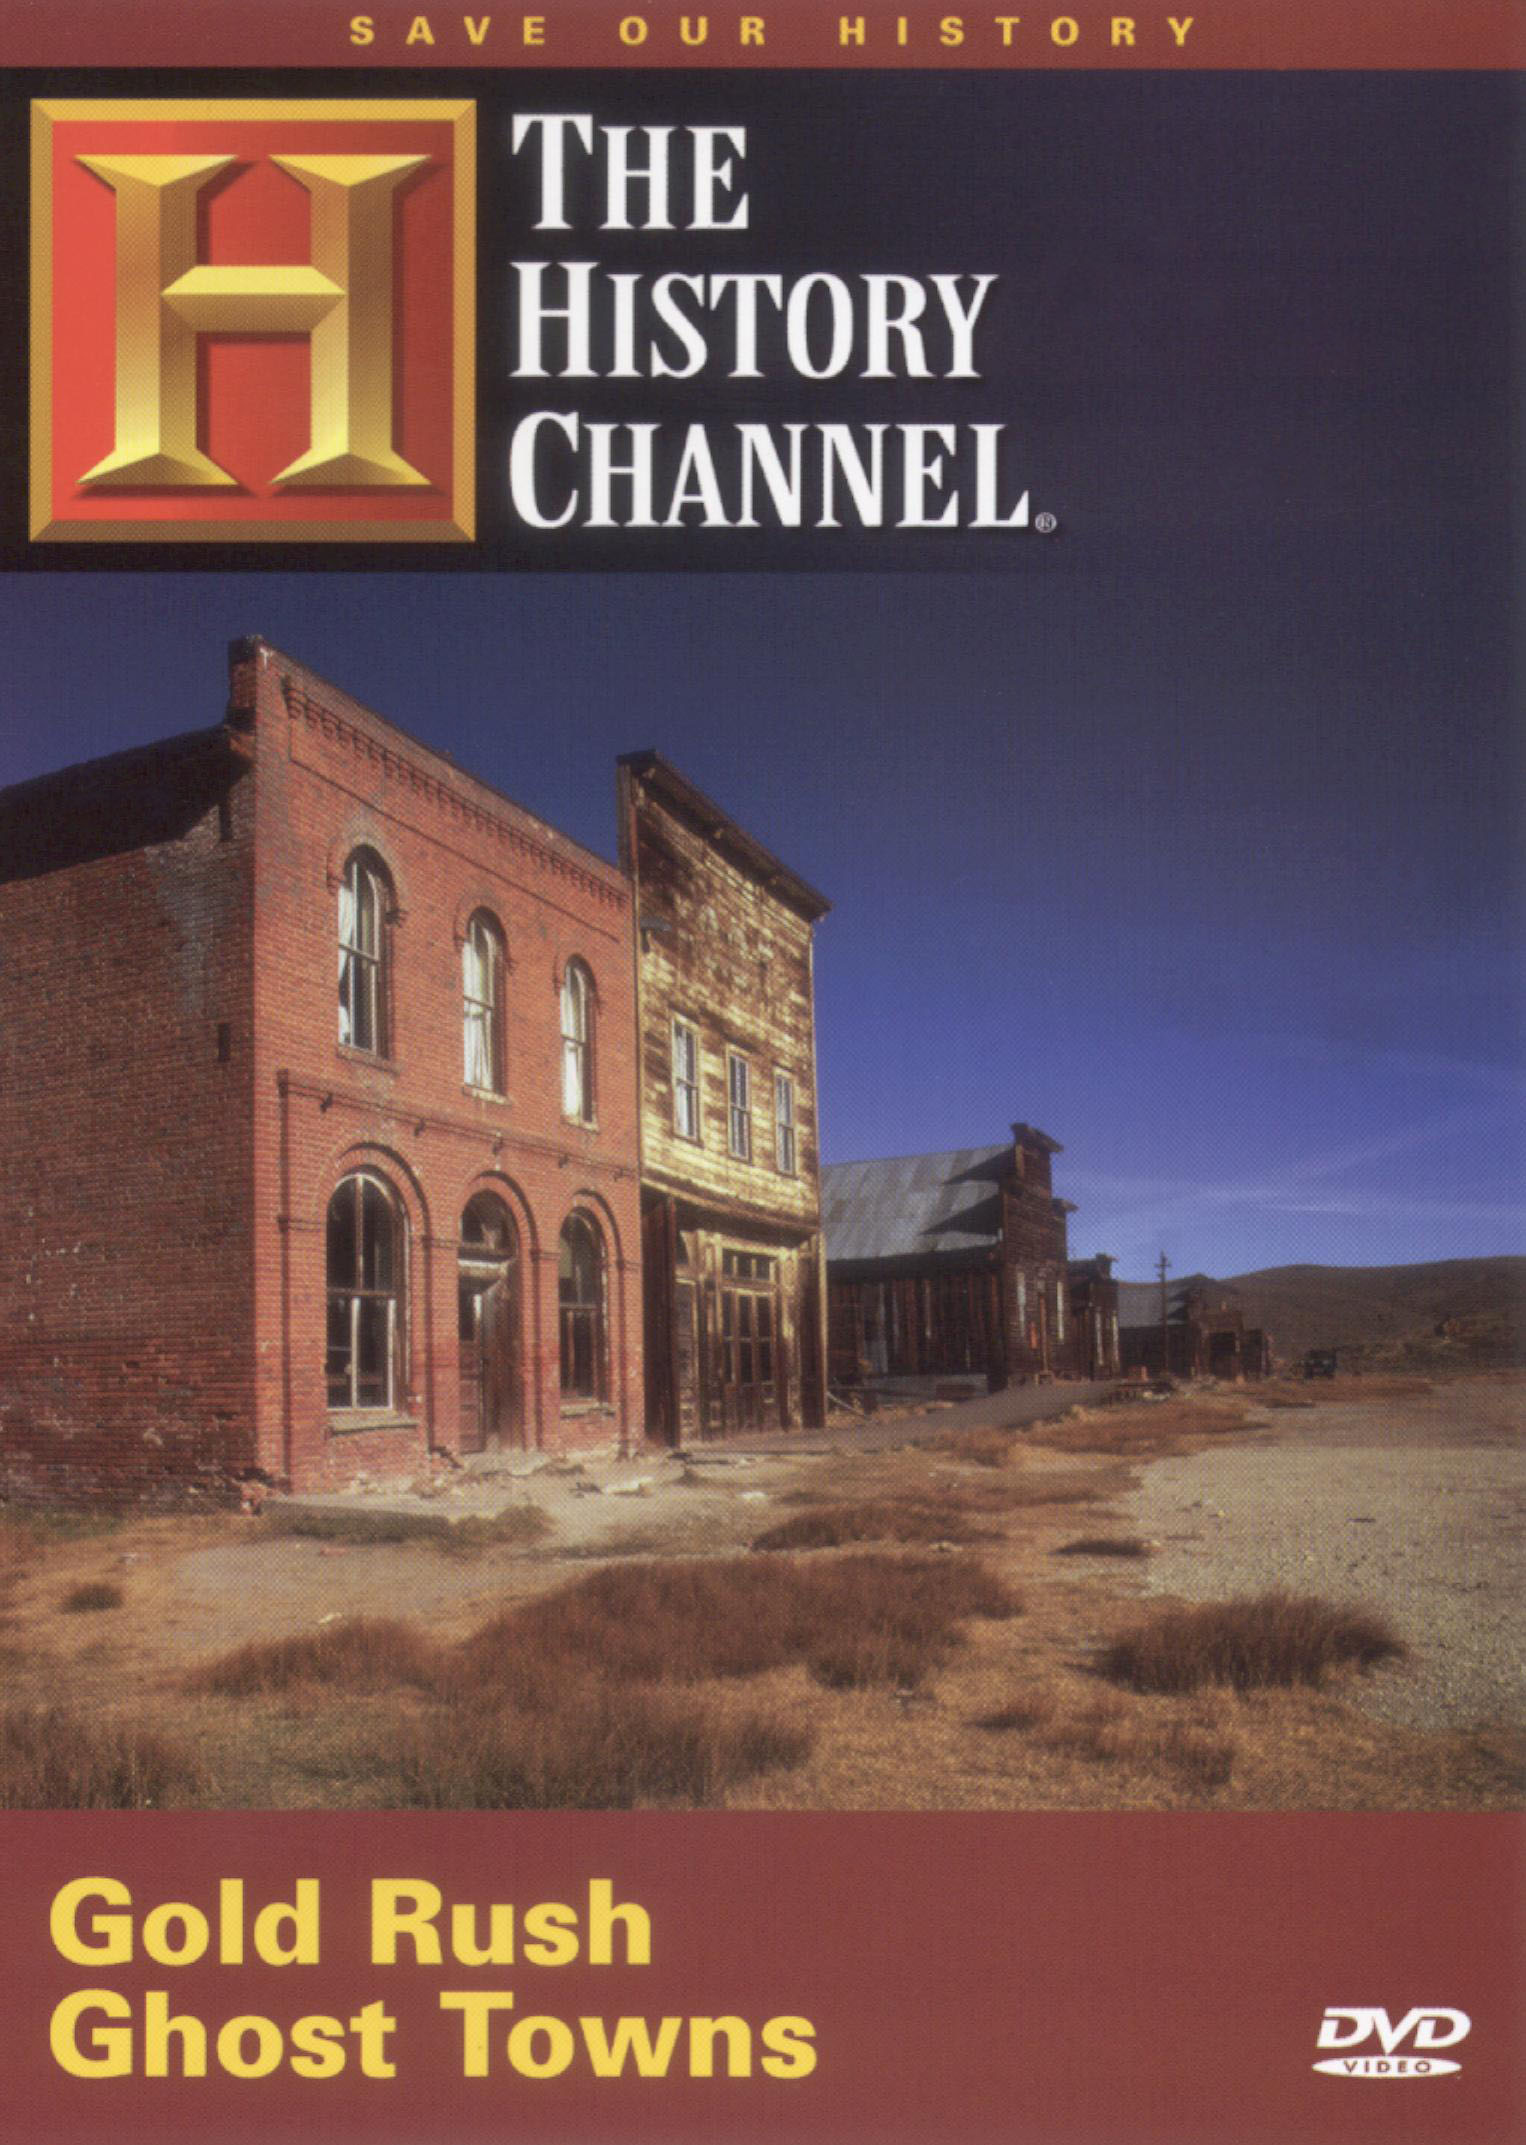 Save Our History: Gold Rush Ghost Towns